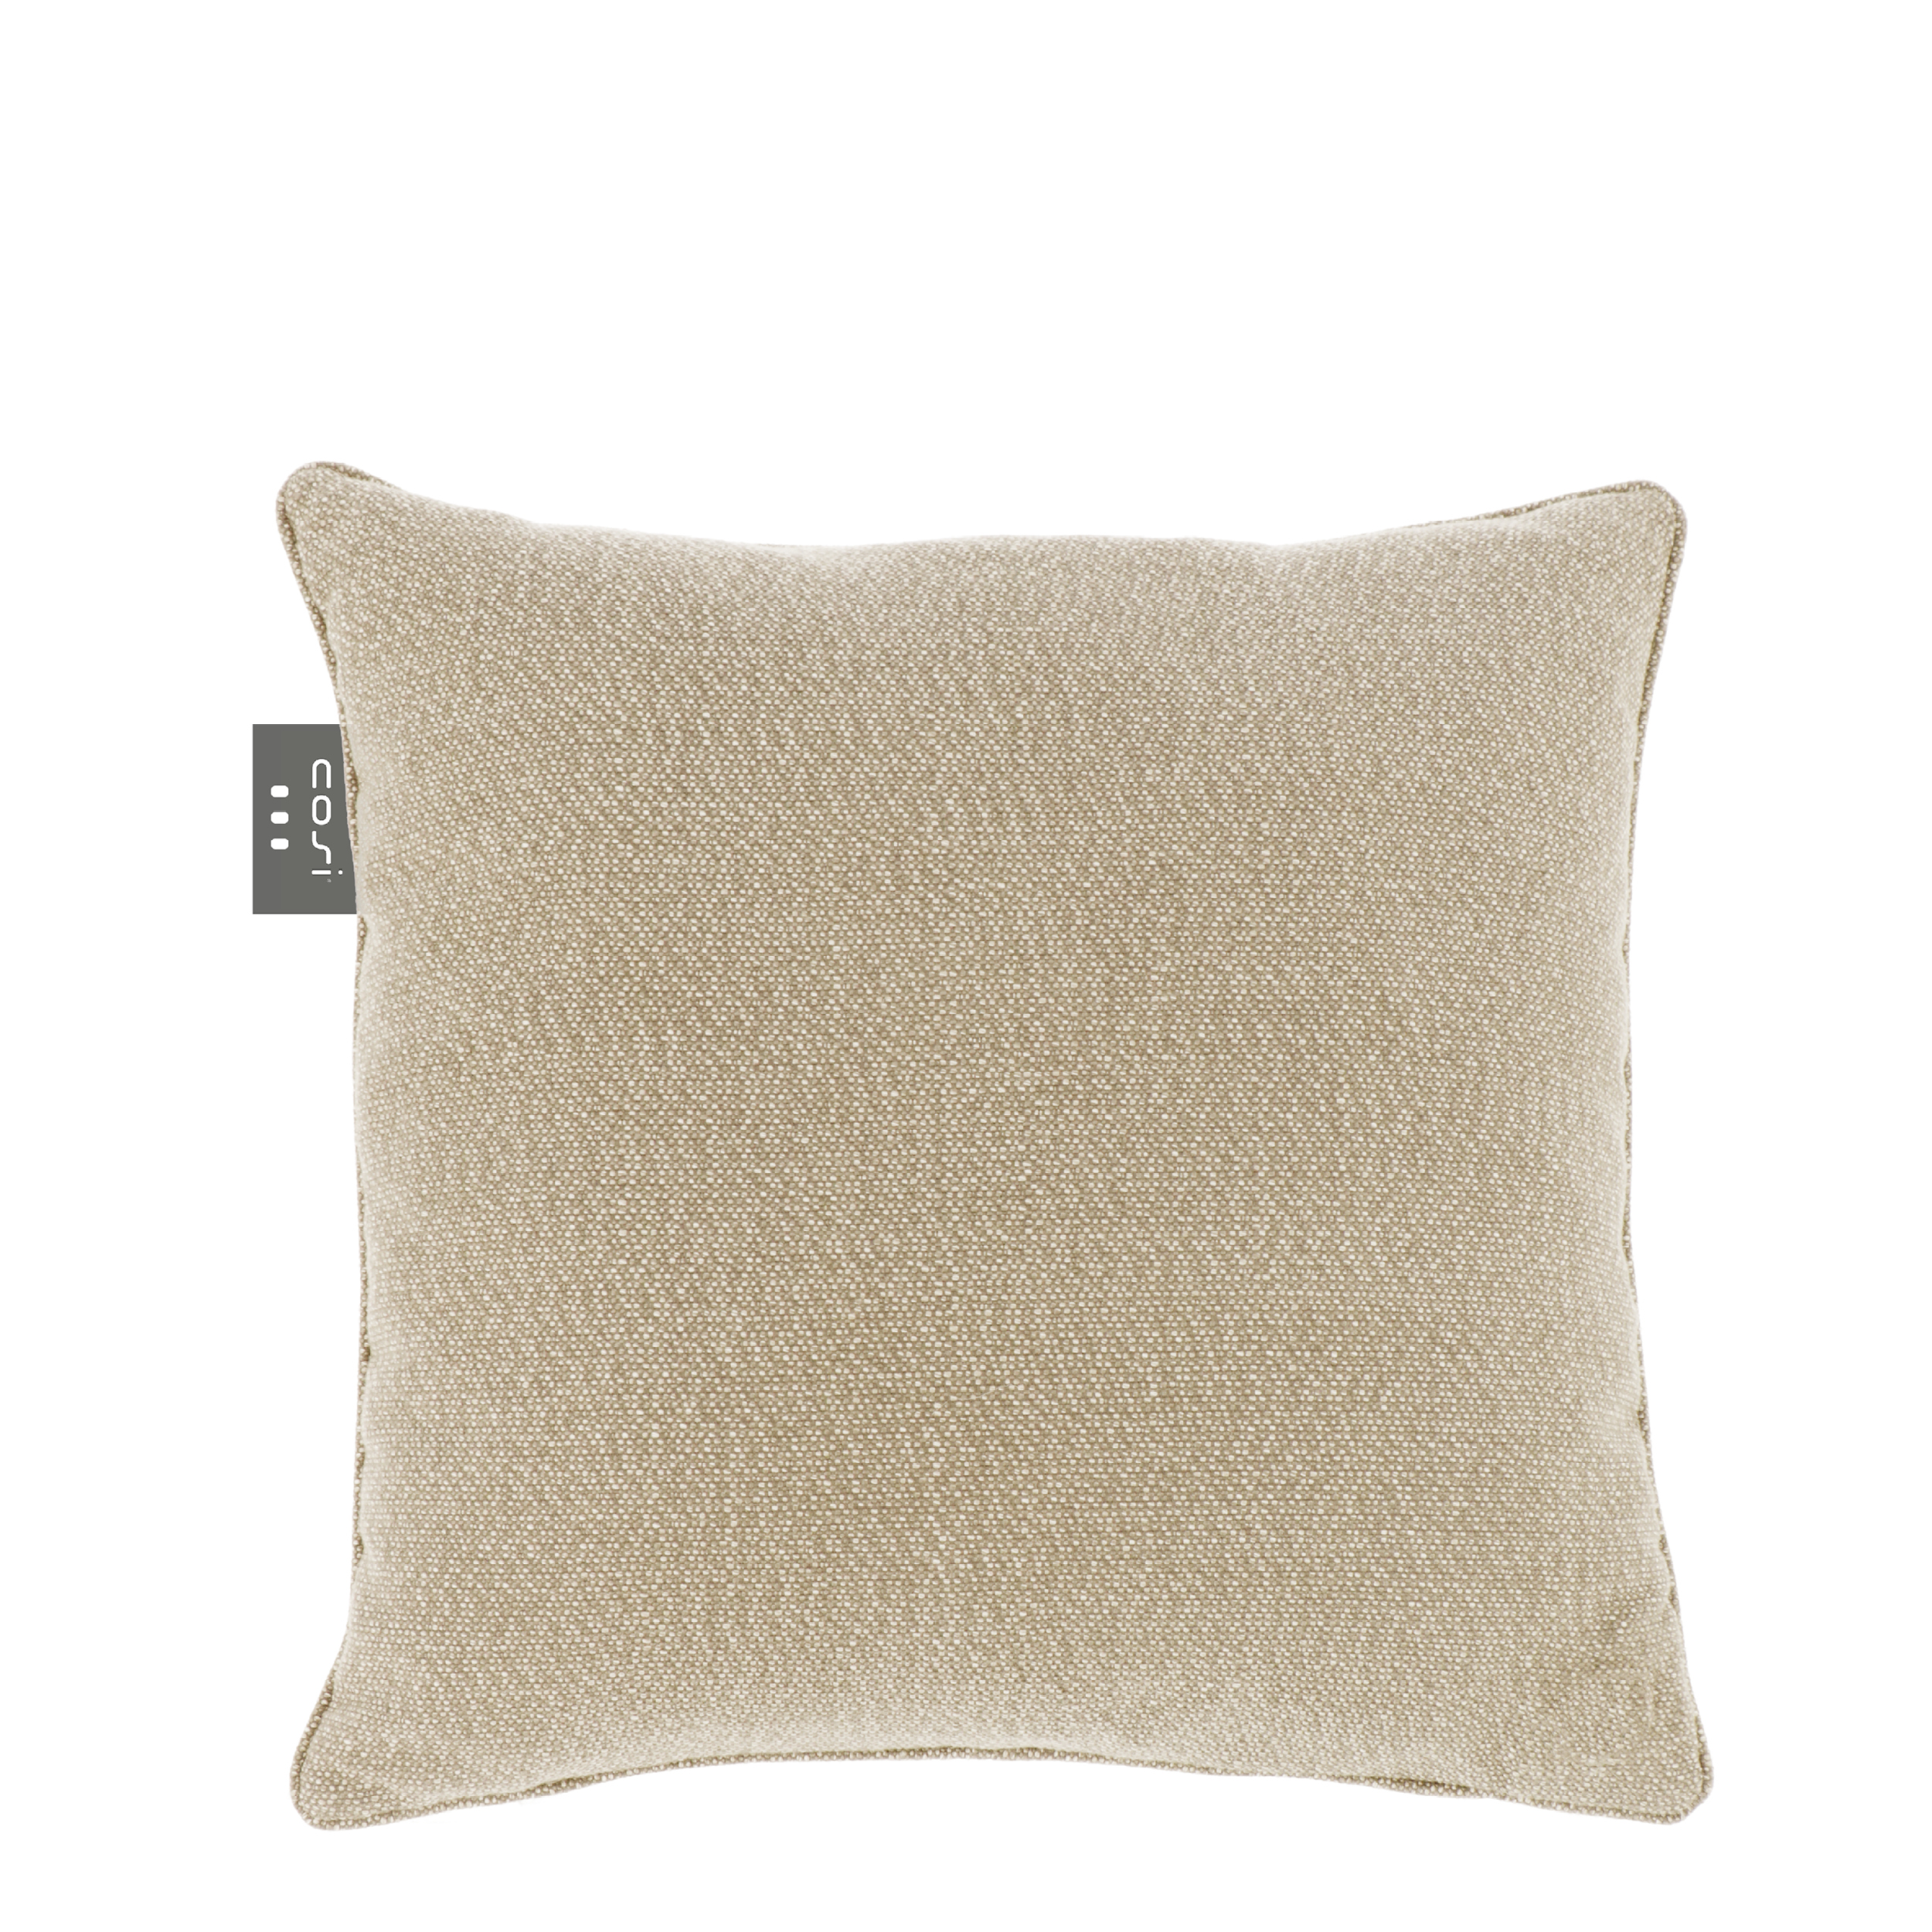 Cosipillow m/varme – knitted ash 50x50cm